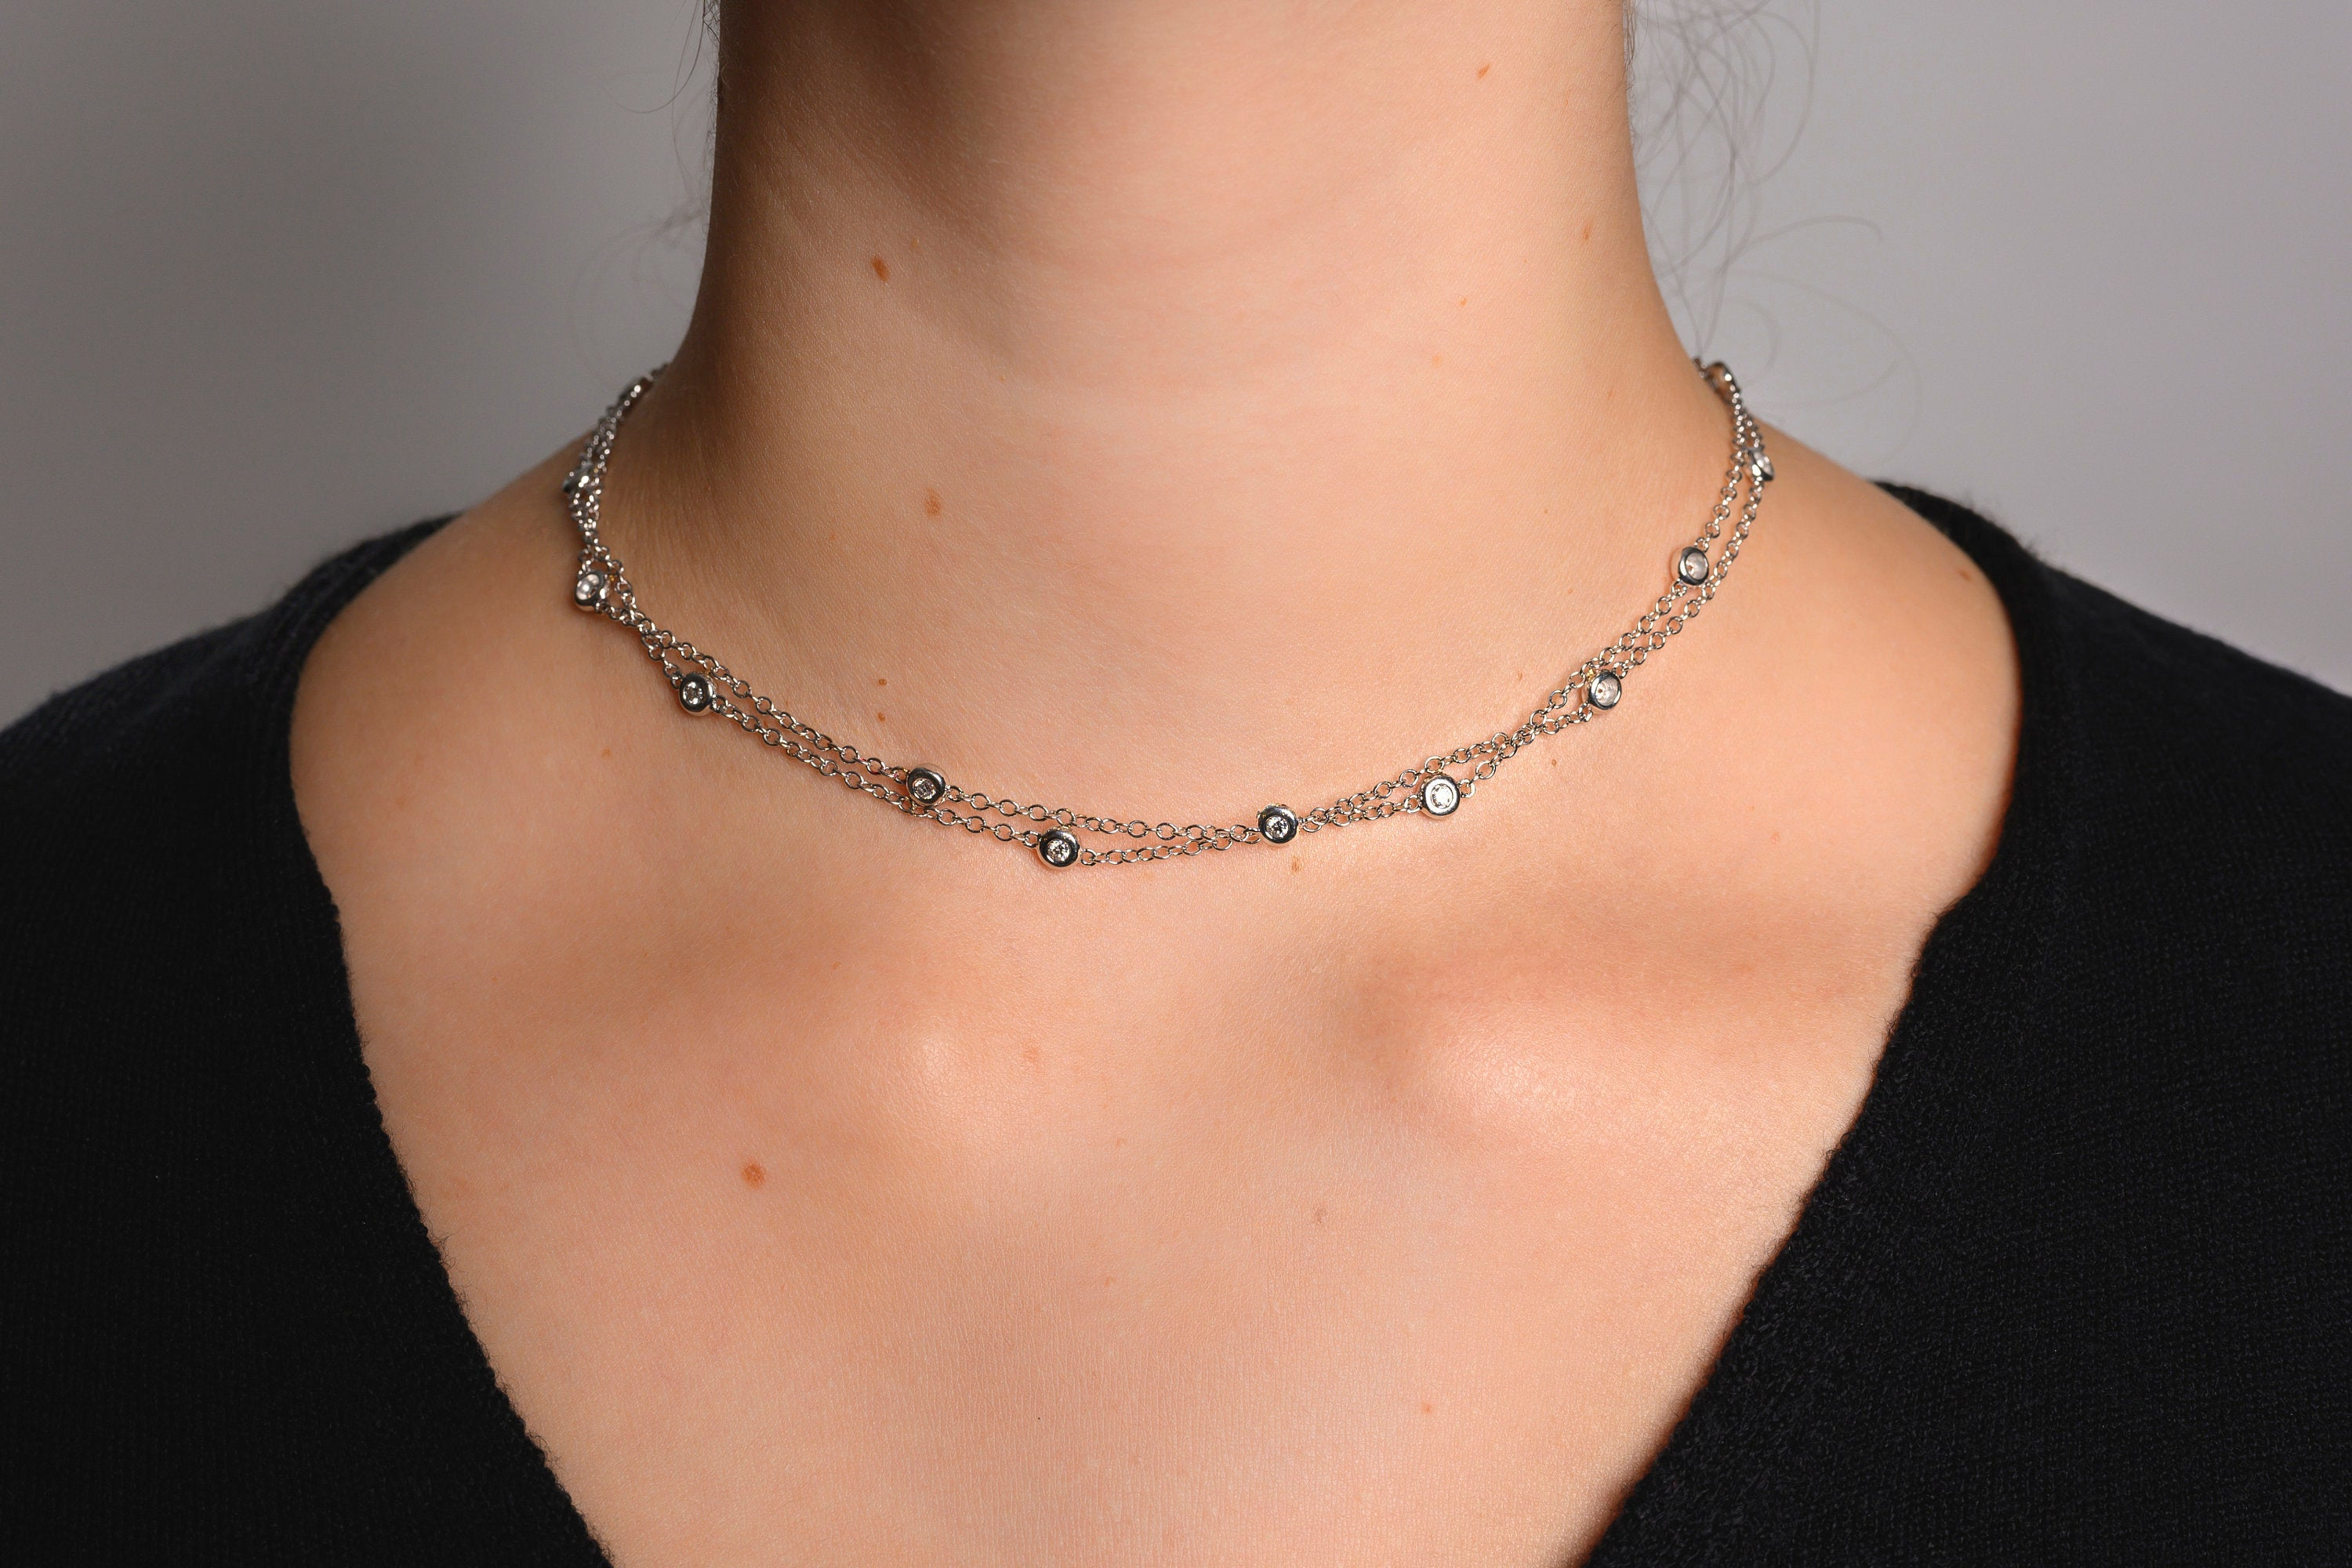 18K White Gold & Diamond Double Chain Necklace